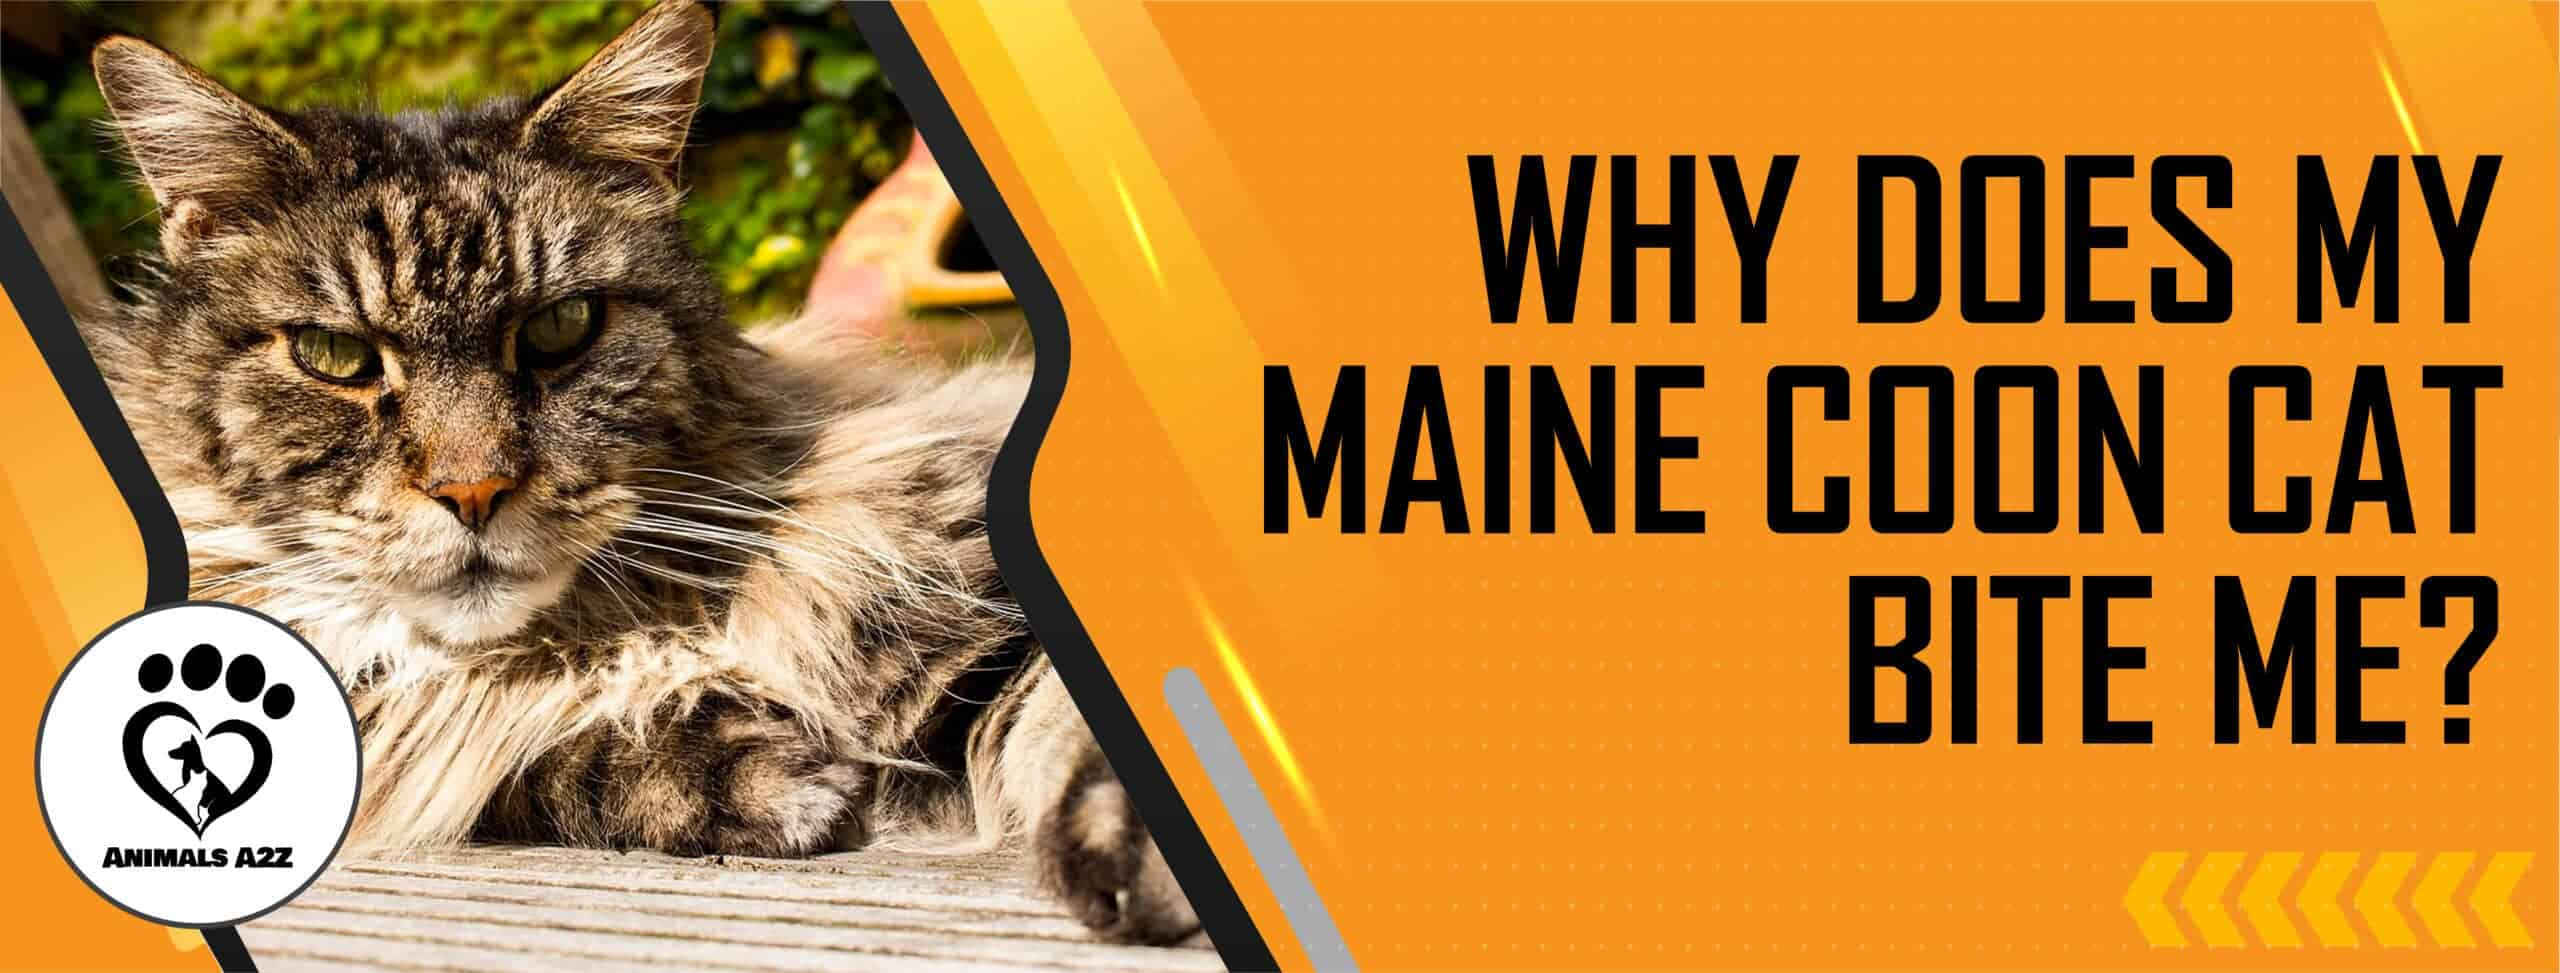 Why does my Maine coon cat bite me?